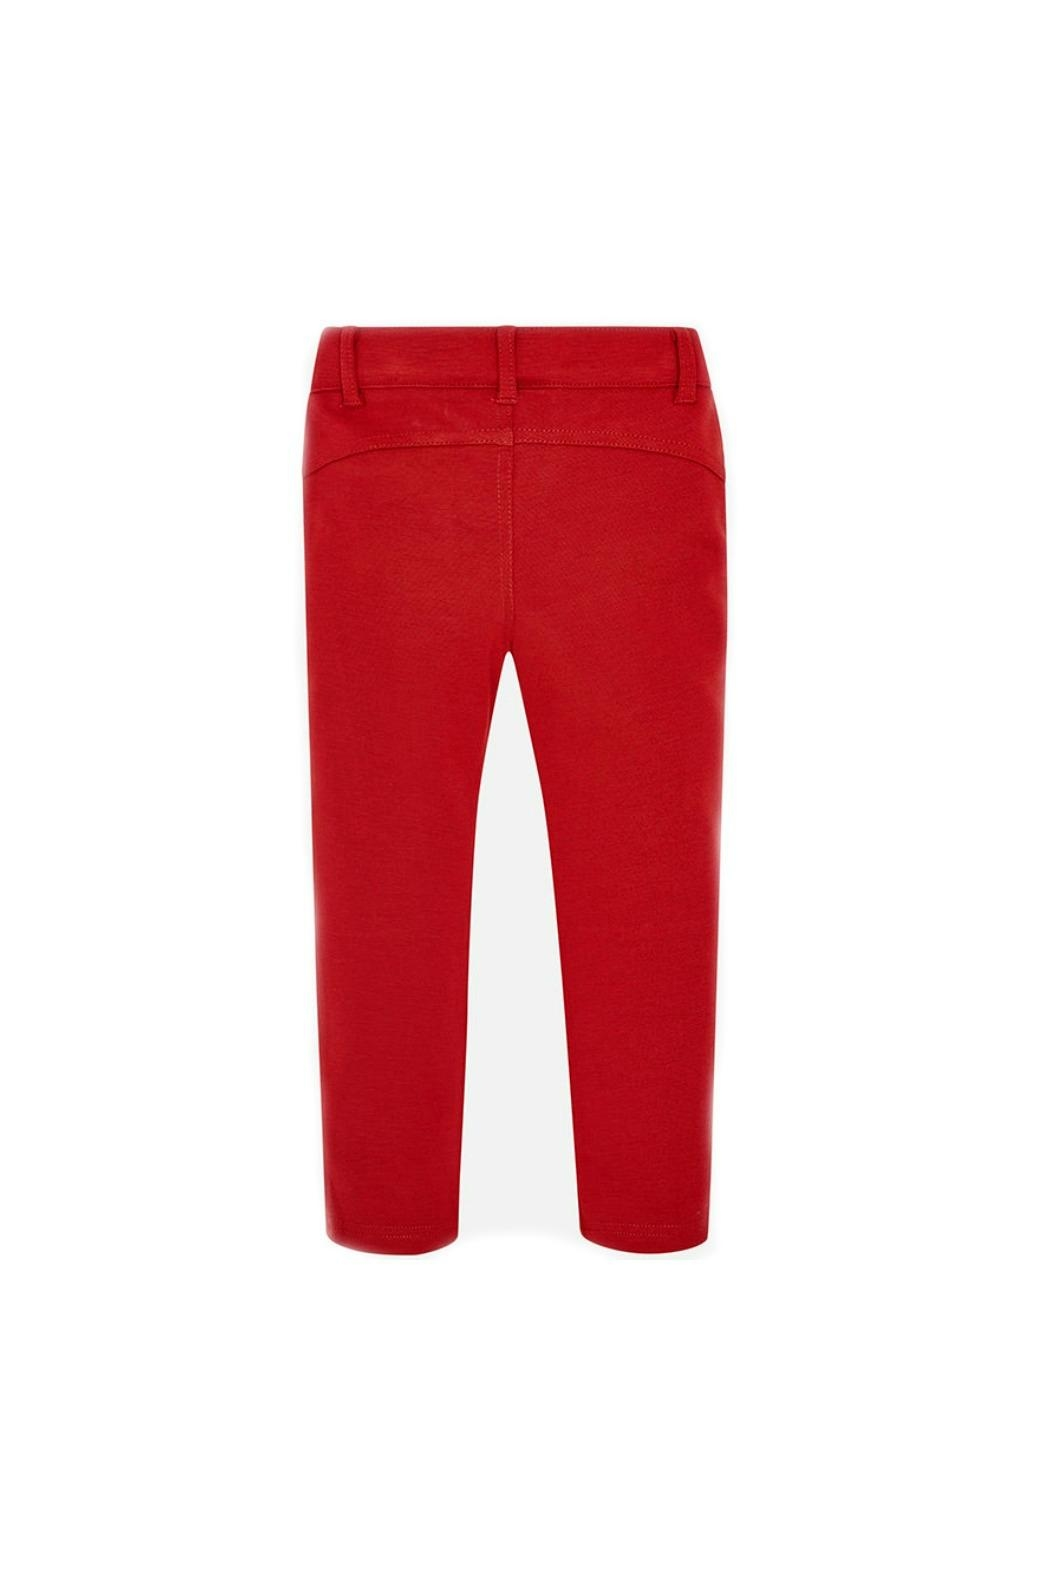 Mayoral Girls Jegging-Style Trousers - Front Full Image